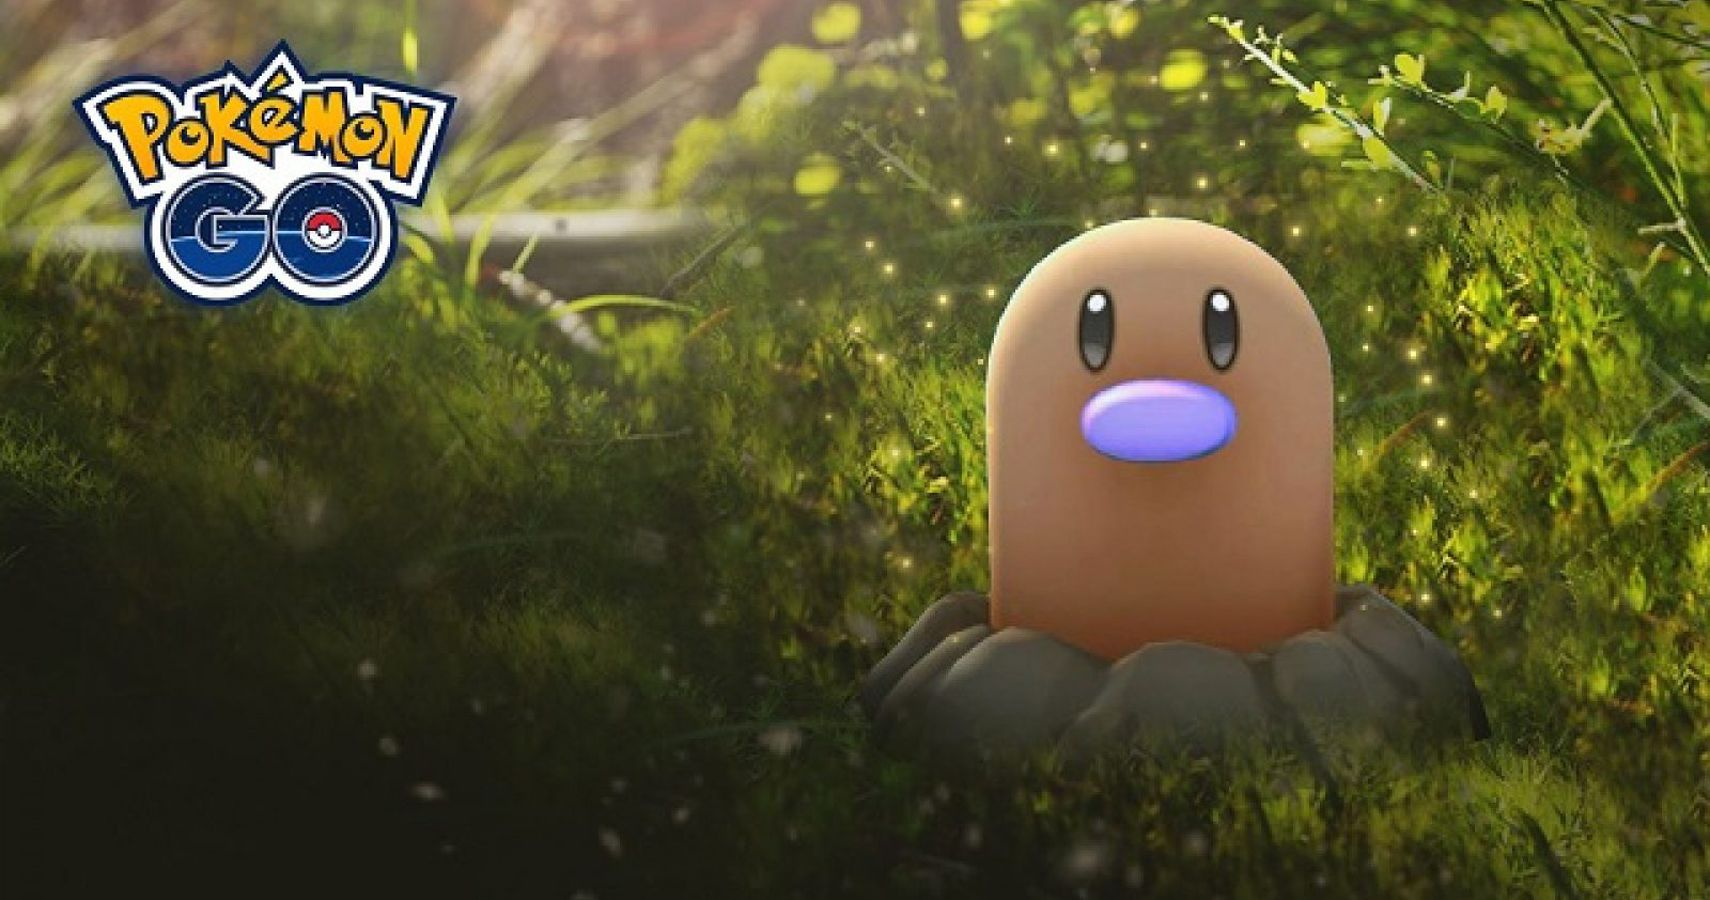 bed56e202678b Pokémon GOs Shiny Diglett Available Until May 2nd | TheGamer